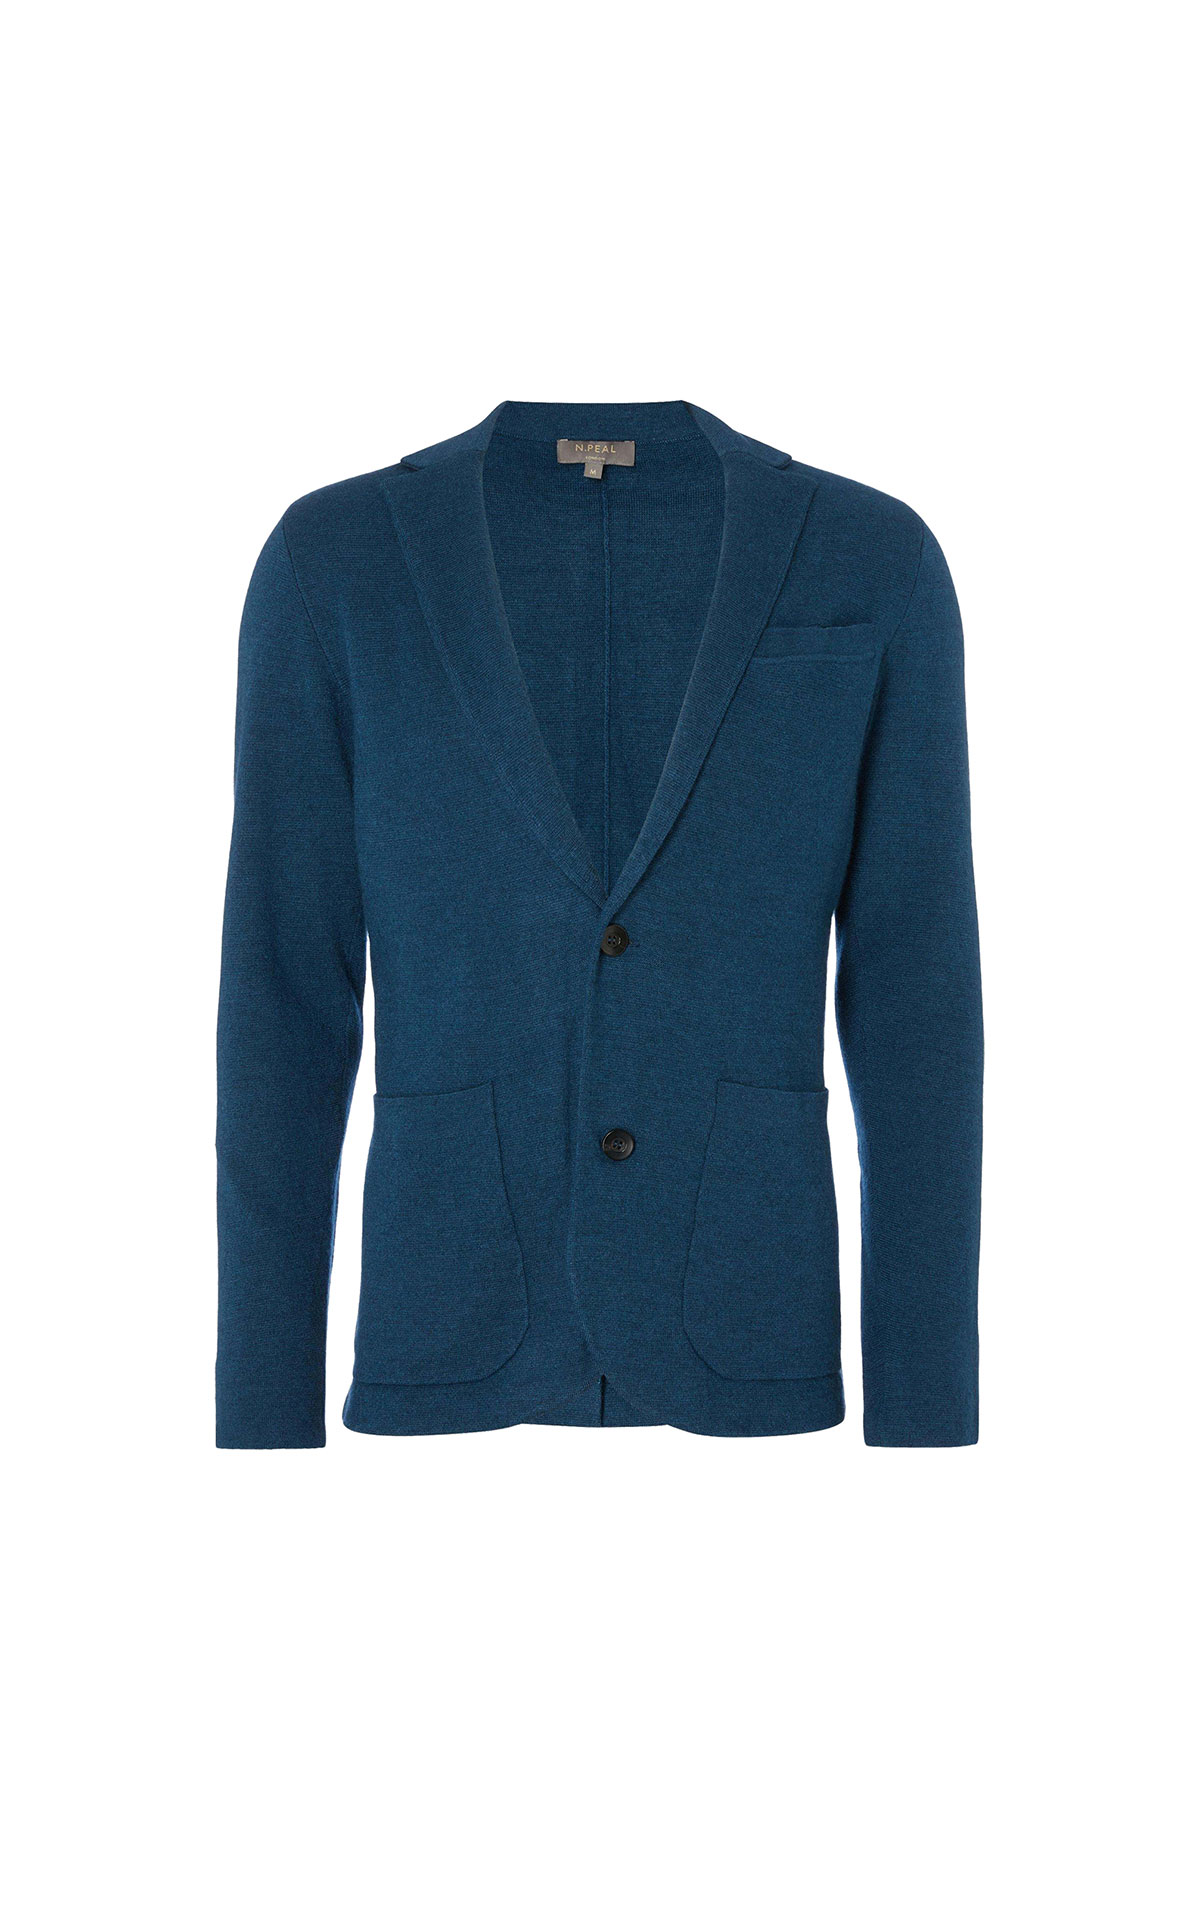 N.Peal Men's FG Milano blazer  from Bicester Village